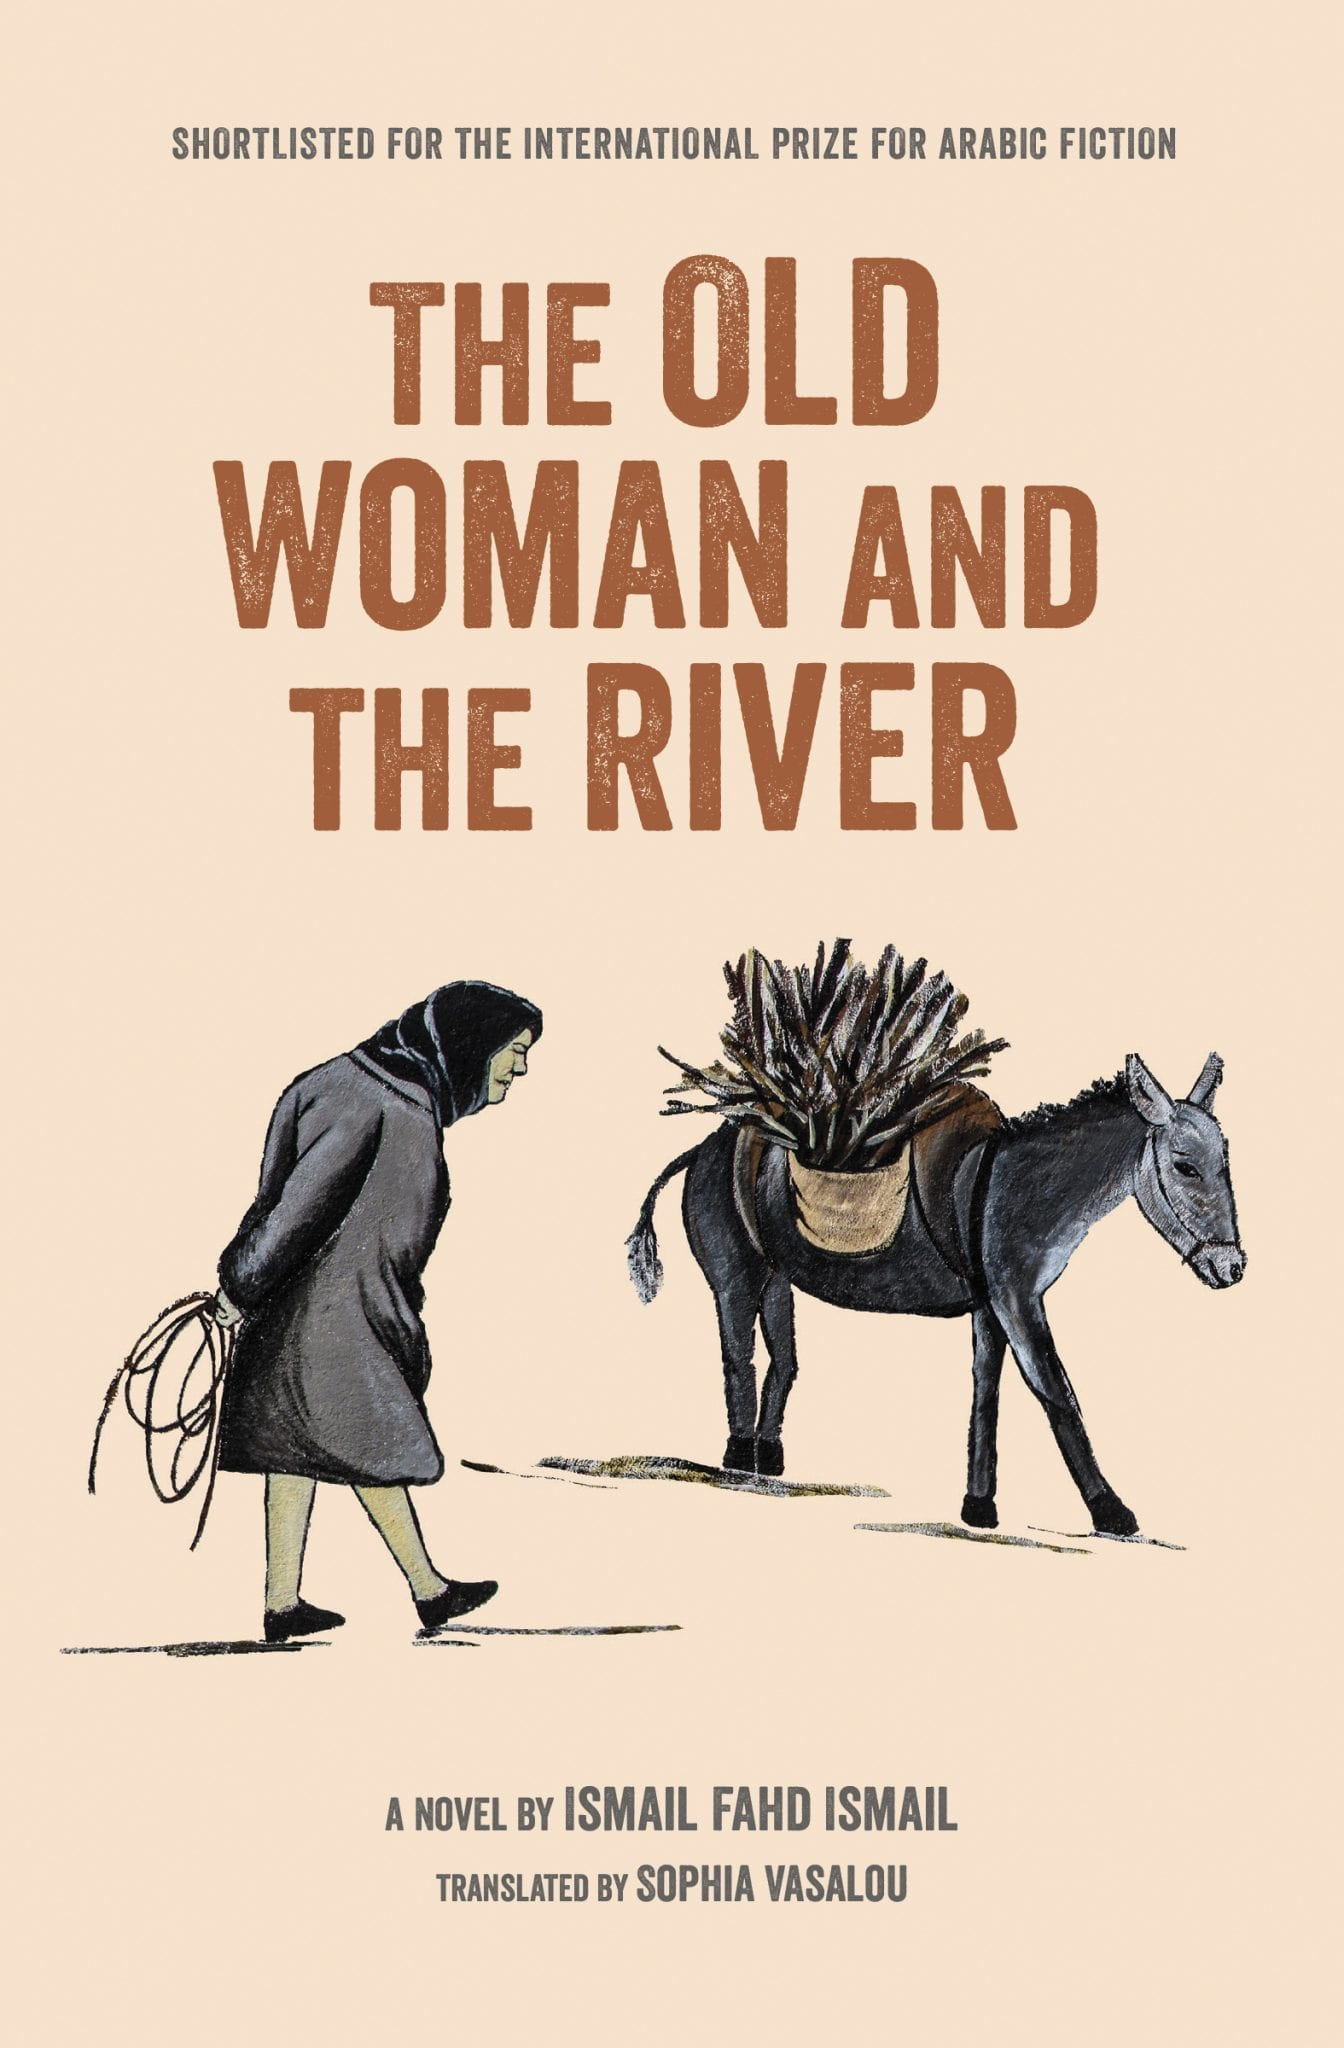 The Old Woman and the River